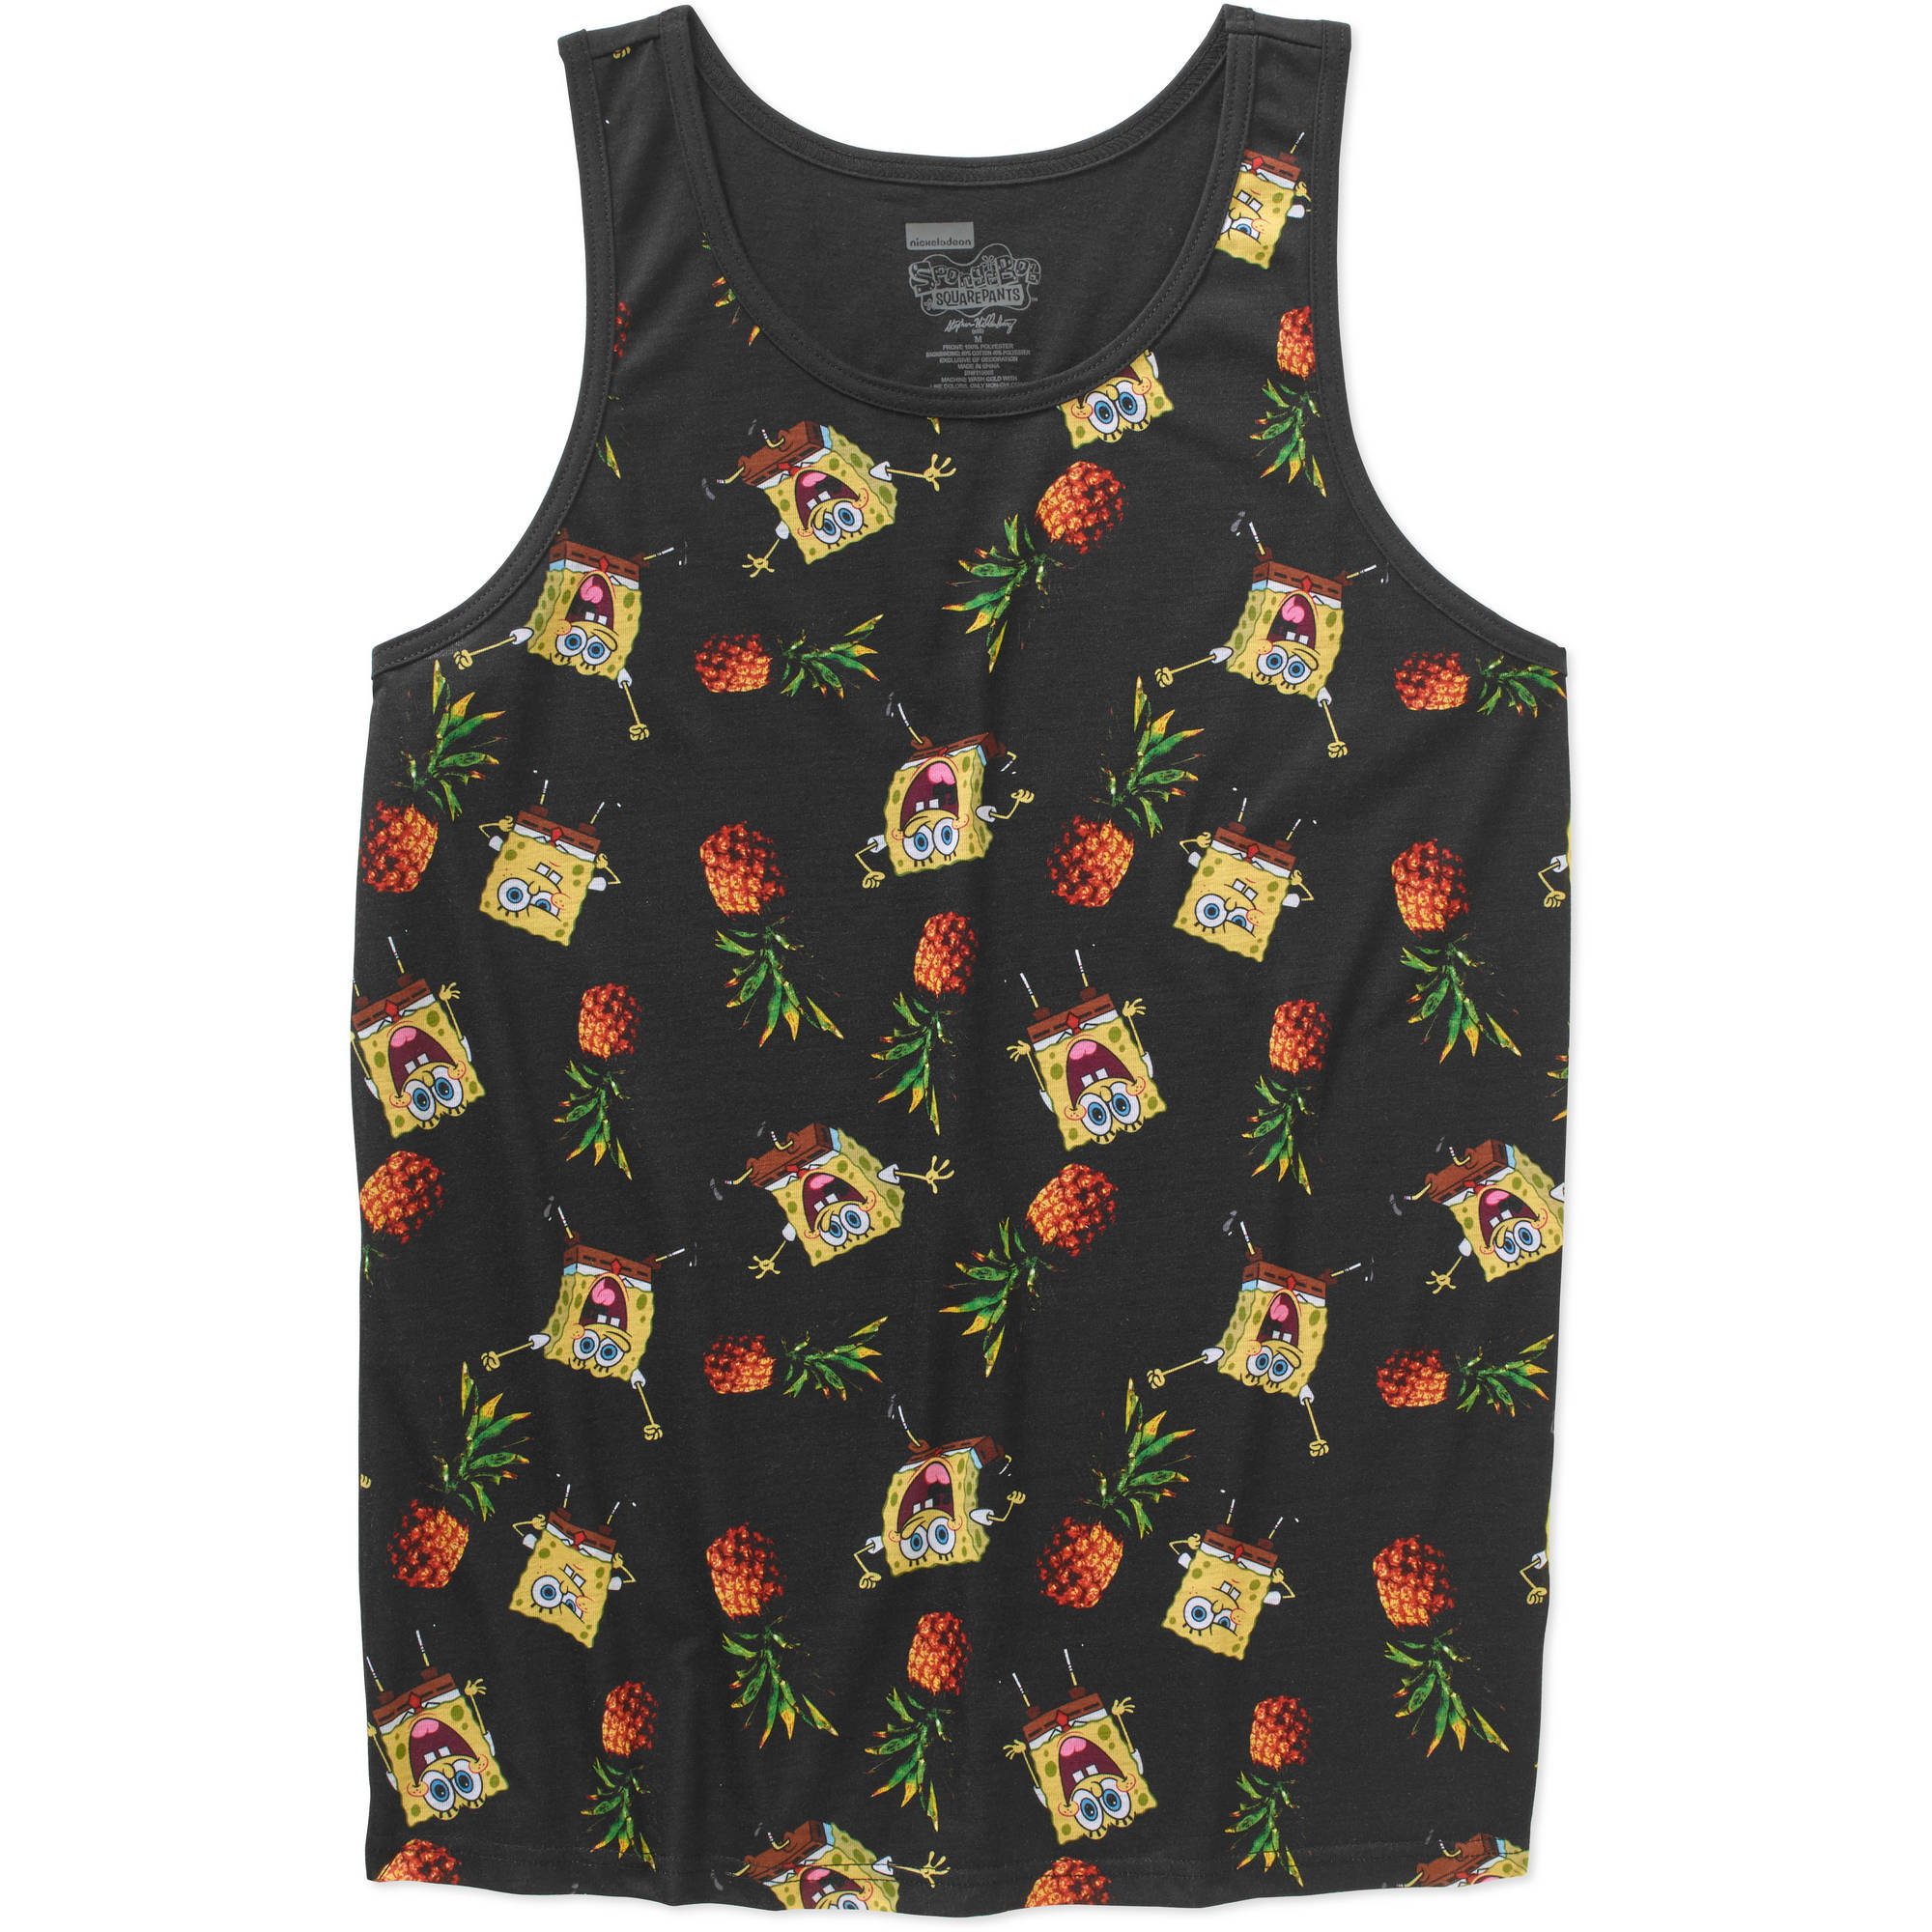 Spongebob Men's Graphic Licensed Tank